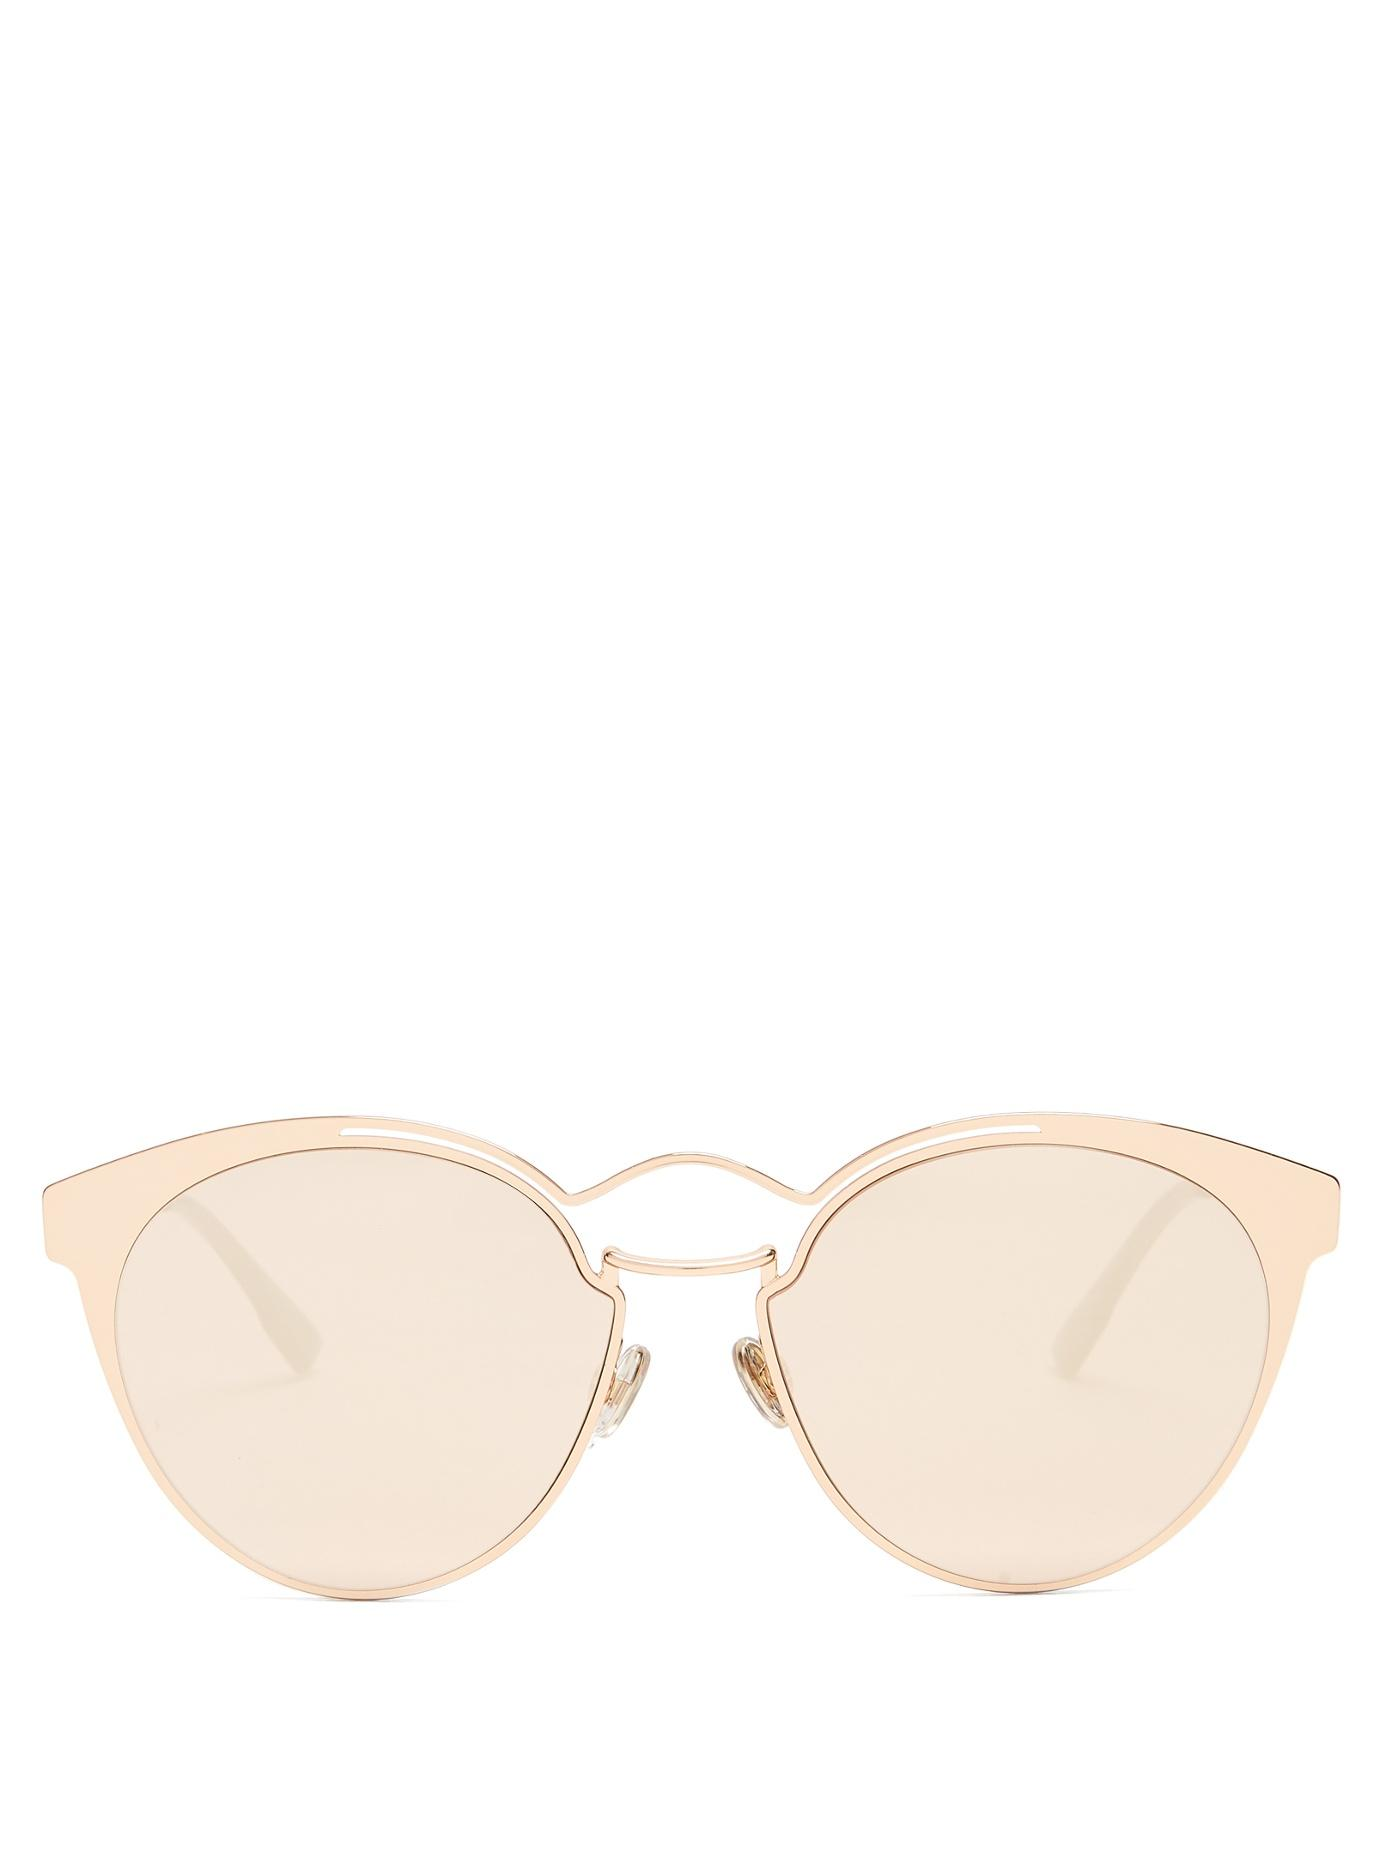 979336fb1e2e Dior Eyewear - Nebula Cat Eye Metal Sunglasses - Womens - Gold ...